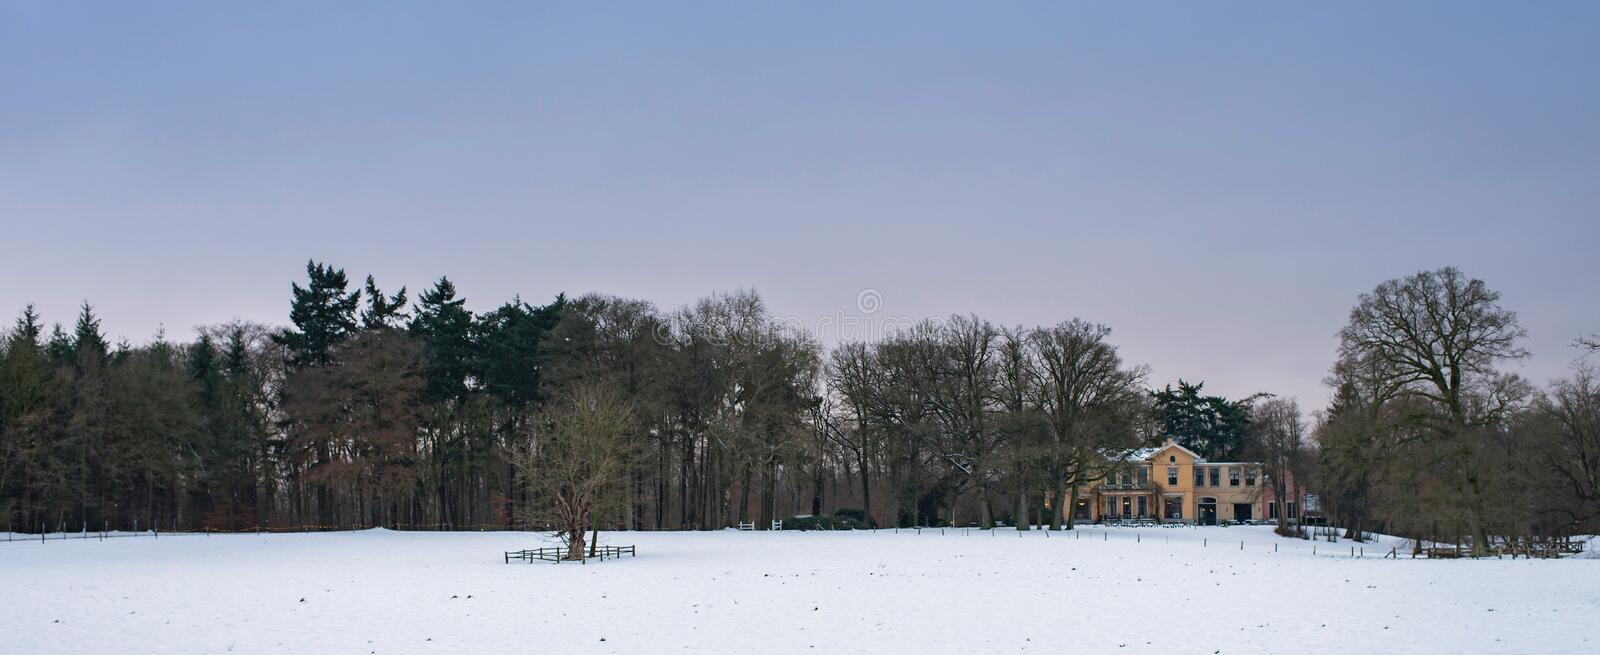 Winter landscape in snow with bare trees and country manor house. royalty free stock images